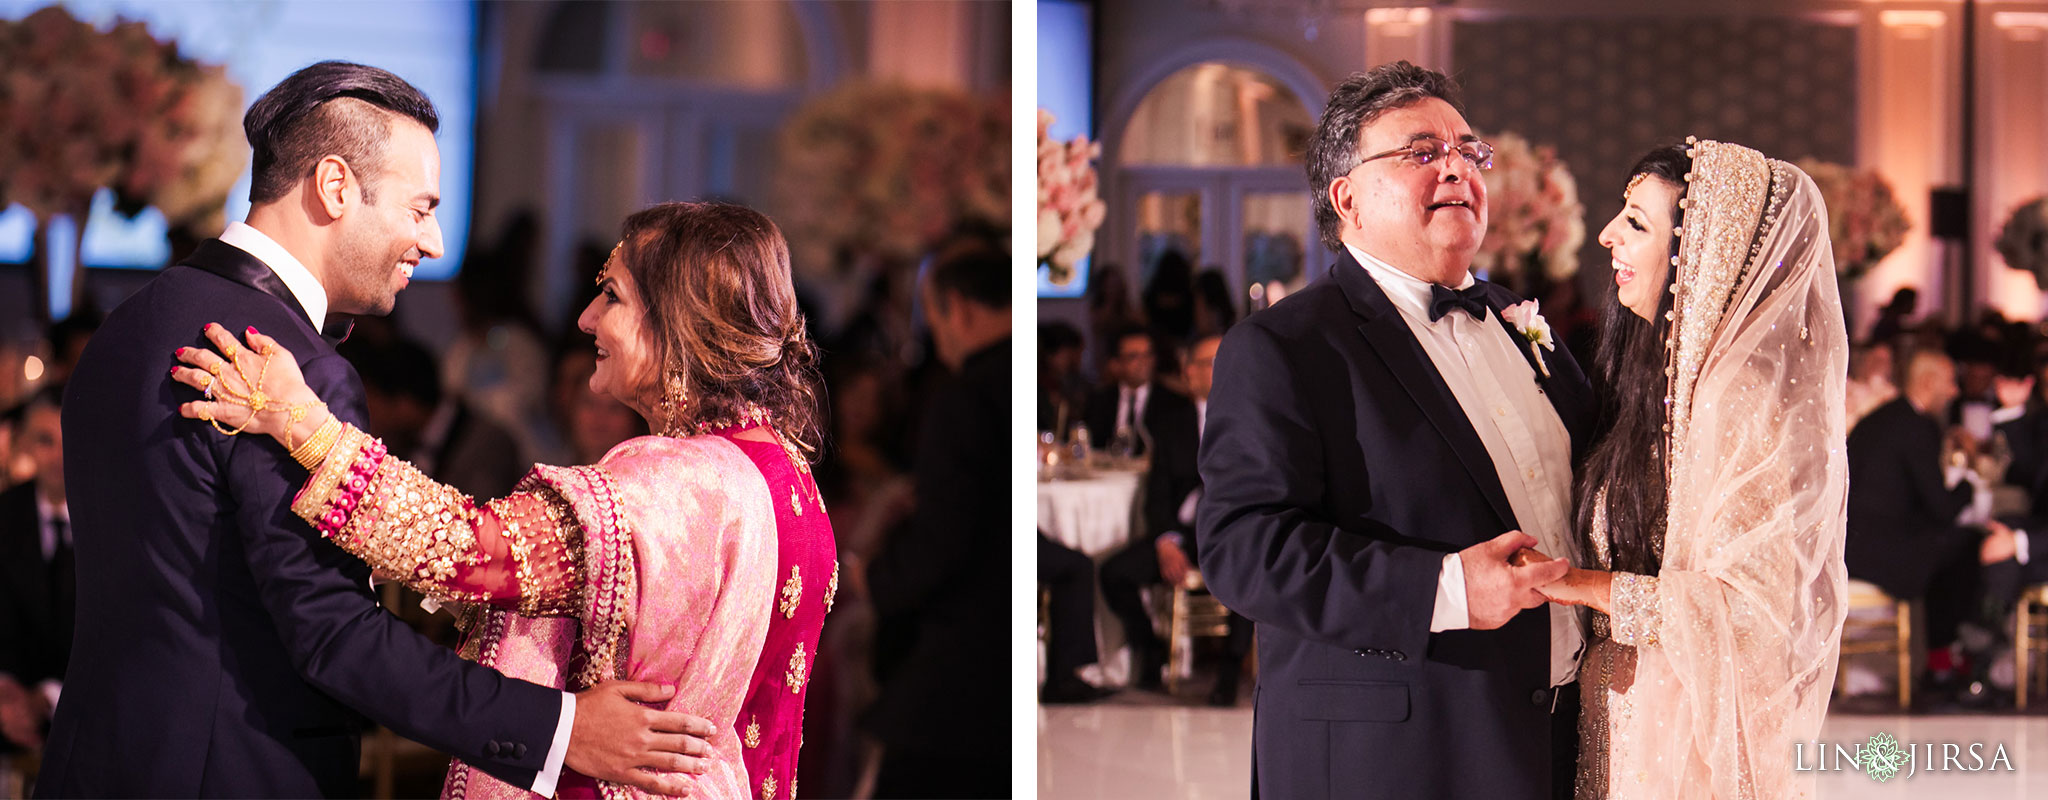 034 ritz carlton laguna niguel south asian wedding reception photography